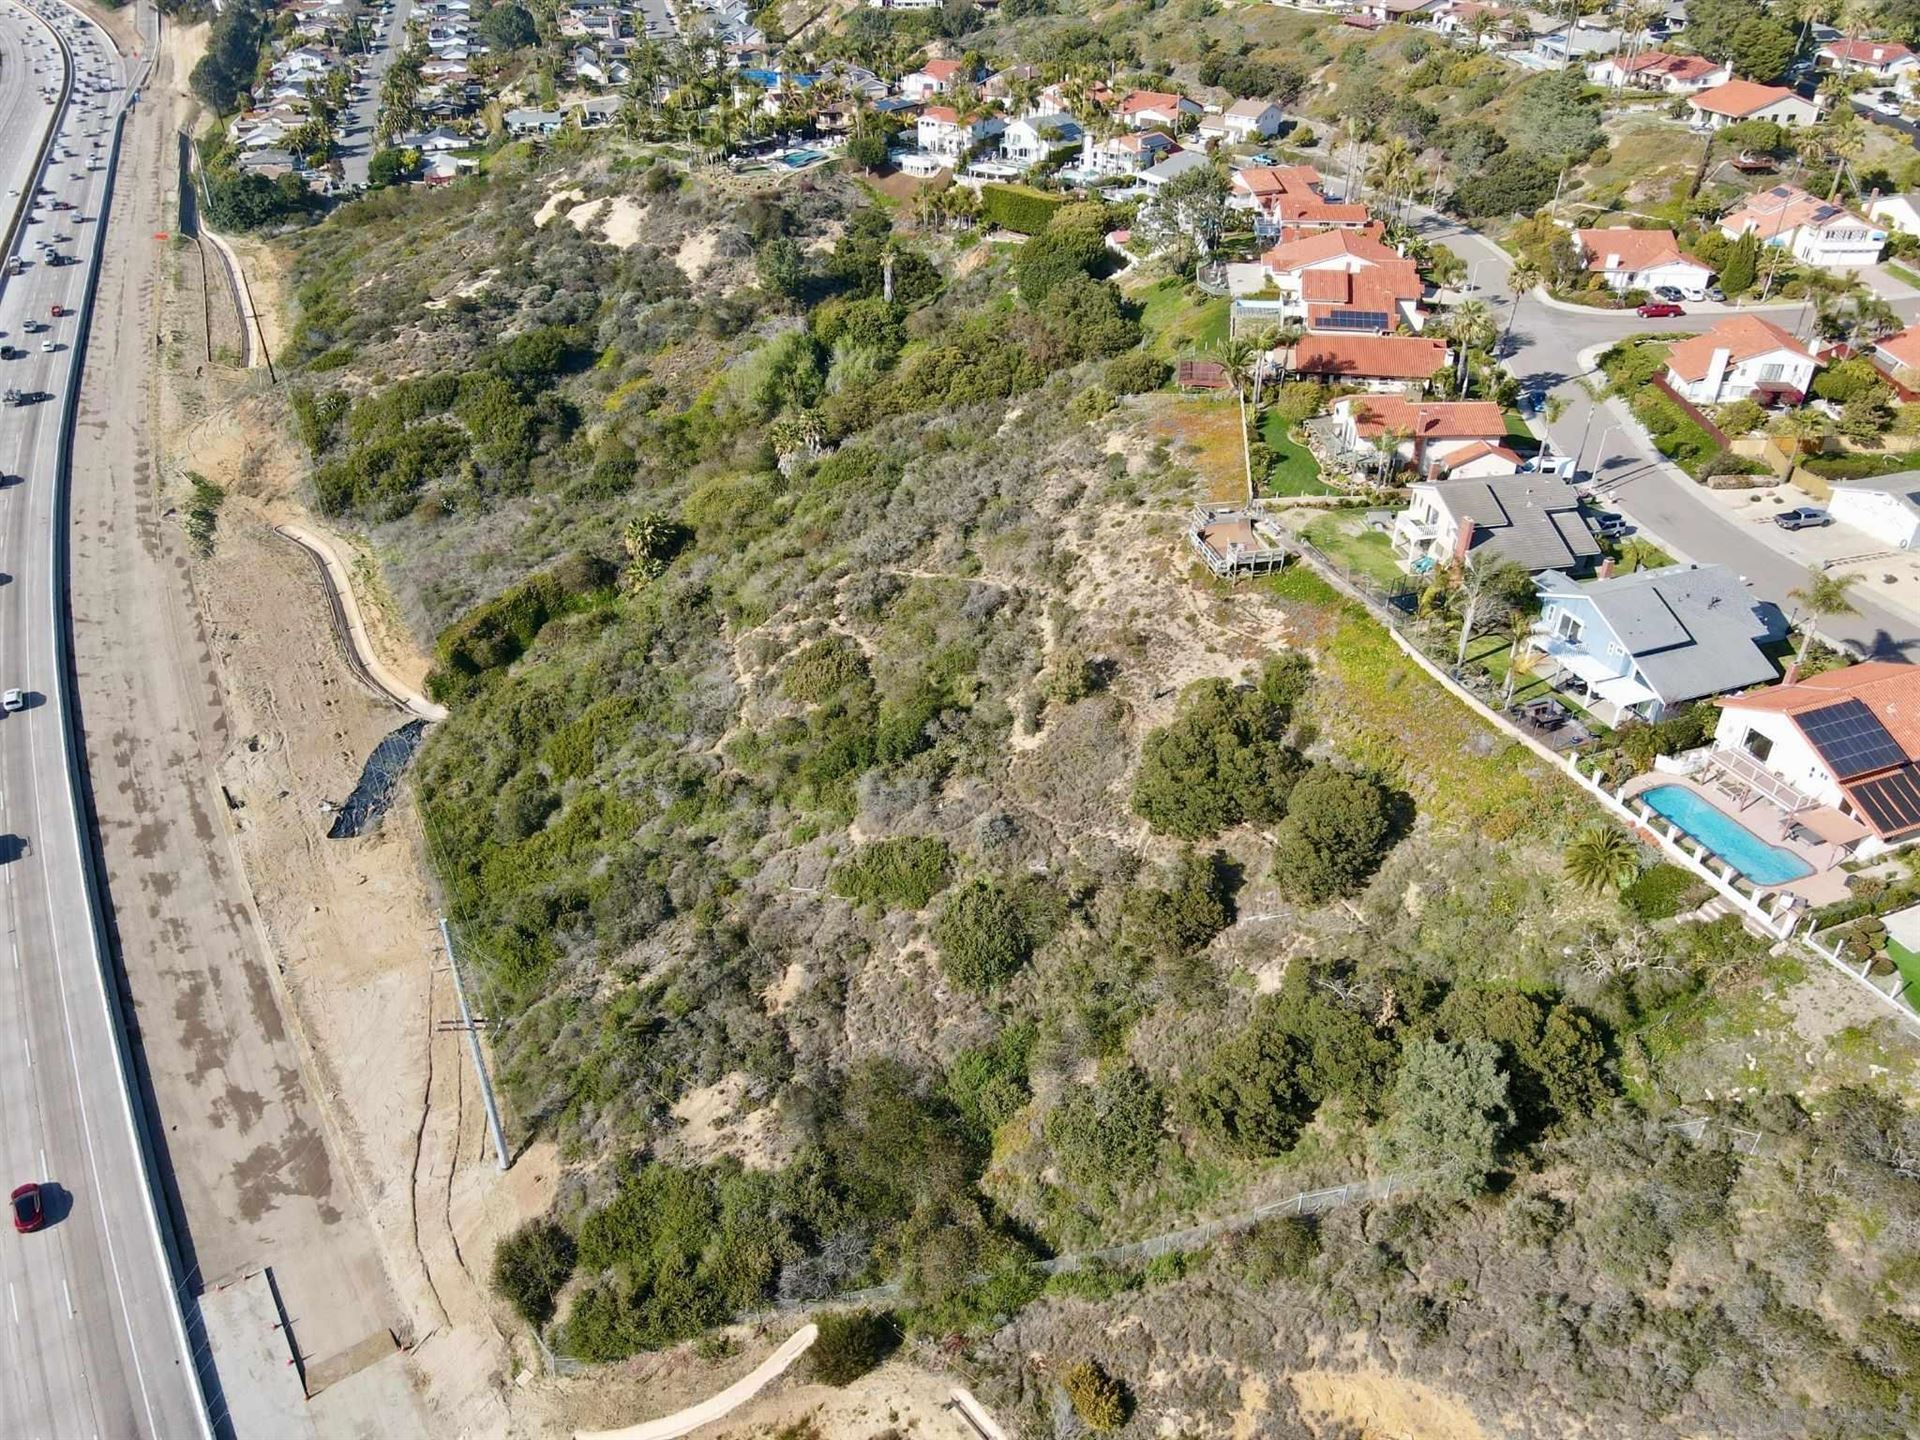 Photo of 0 Playa Riviera Dr., Cardiff by the Sea, CA 92007 (MLS # 210008088)